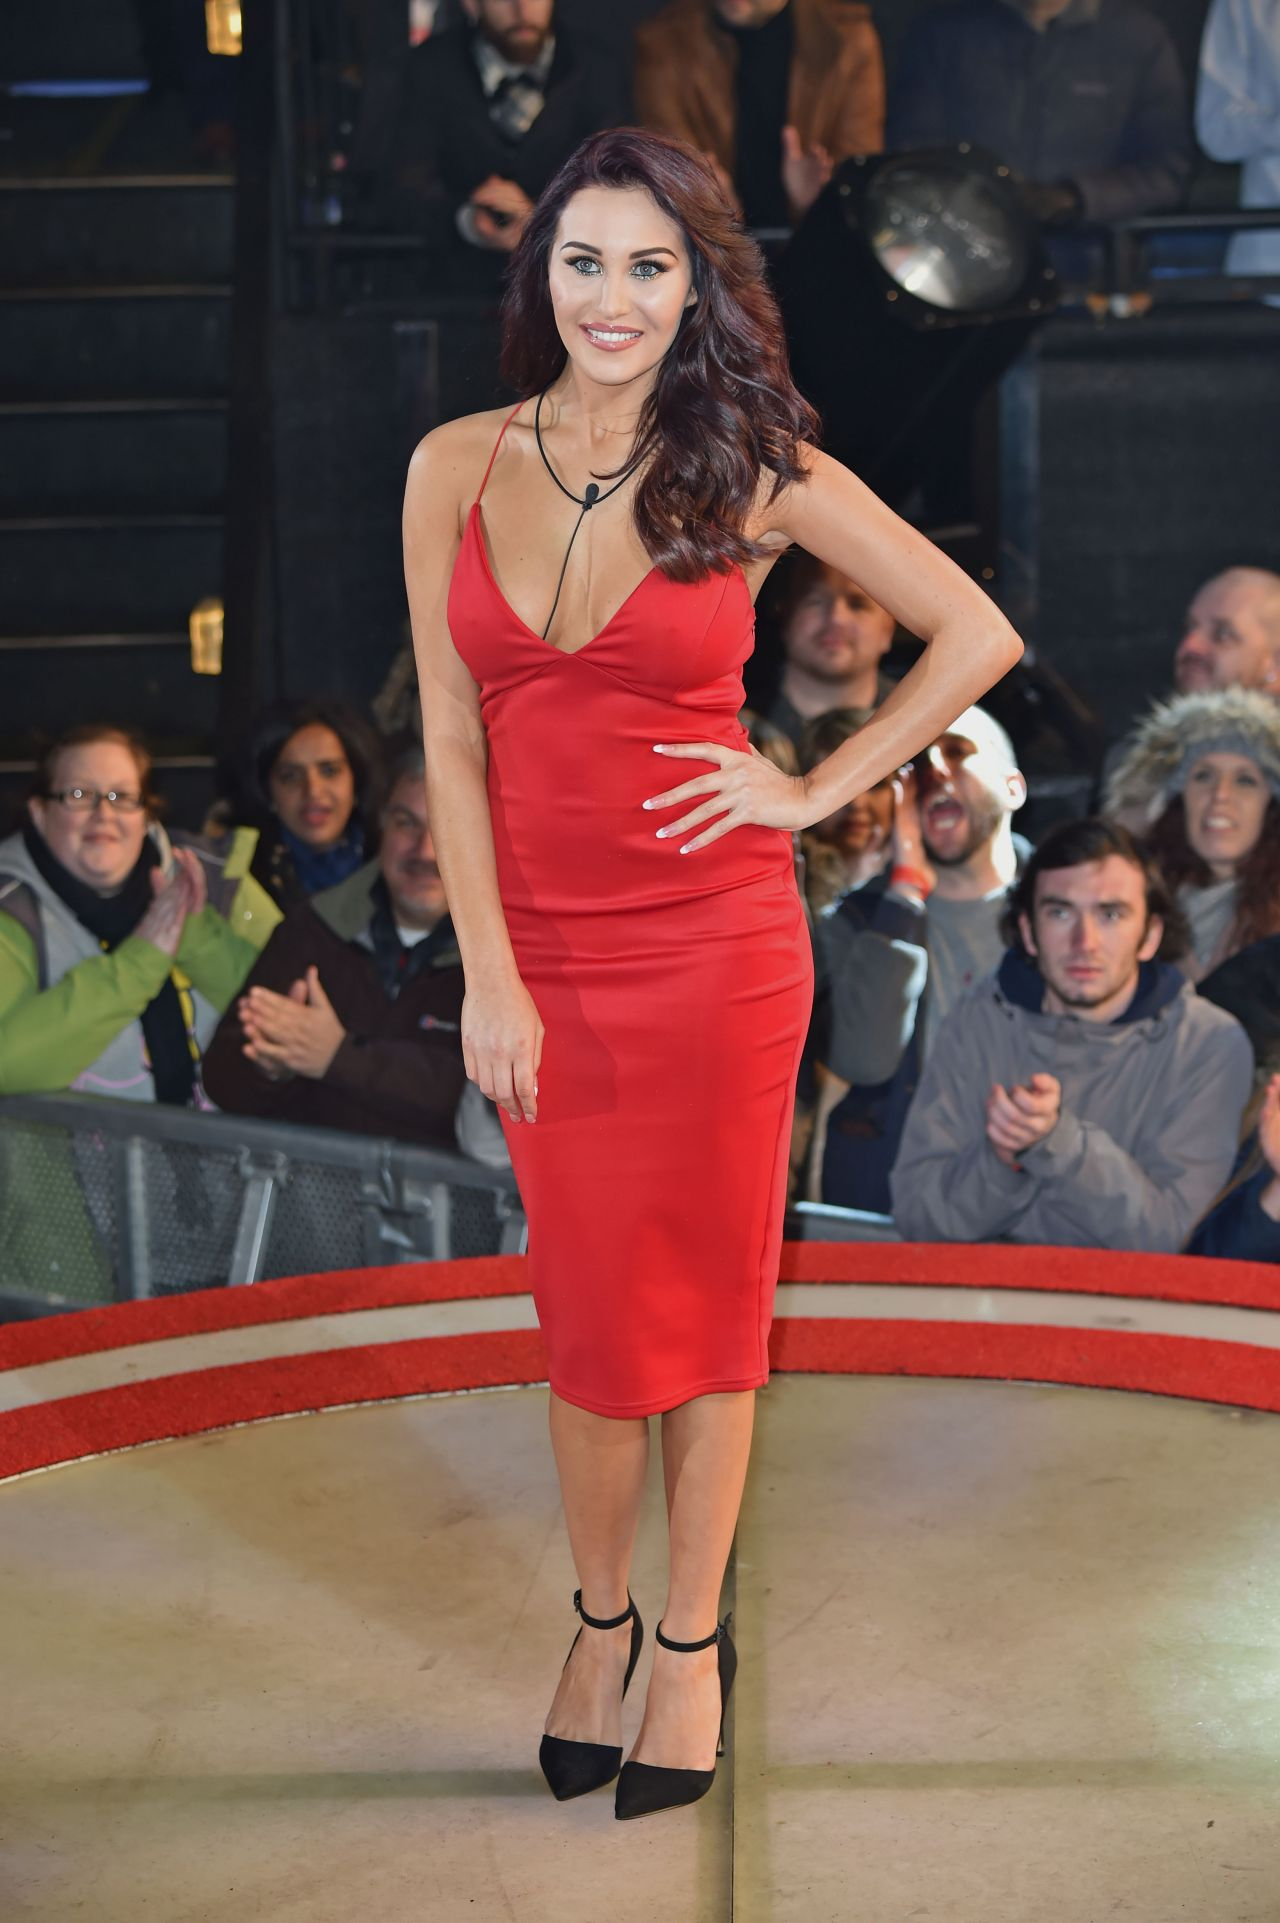 759 Best Celebrity Big Brother images | Celebrities ...